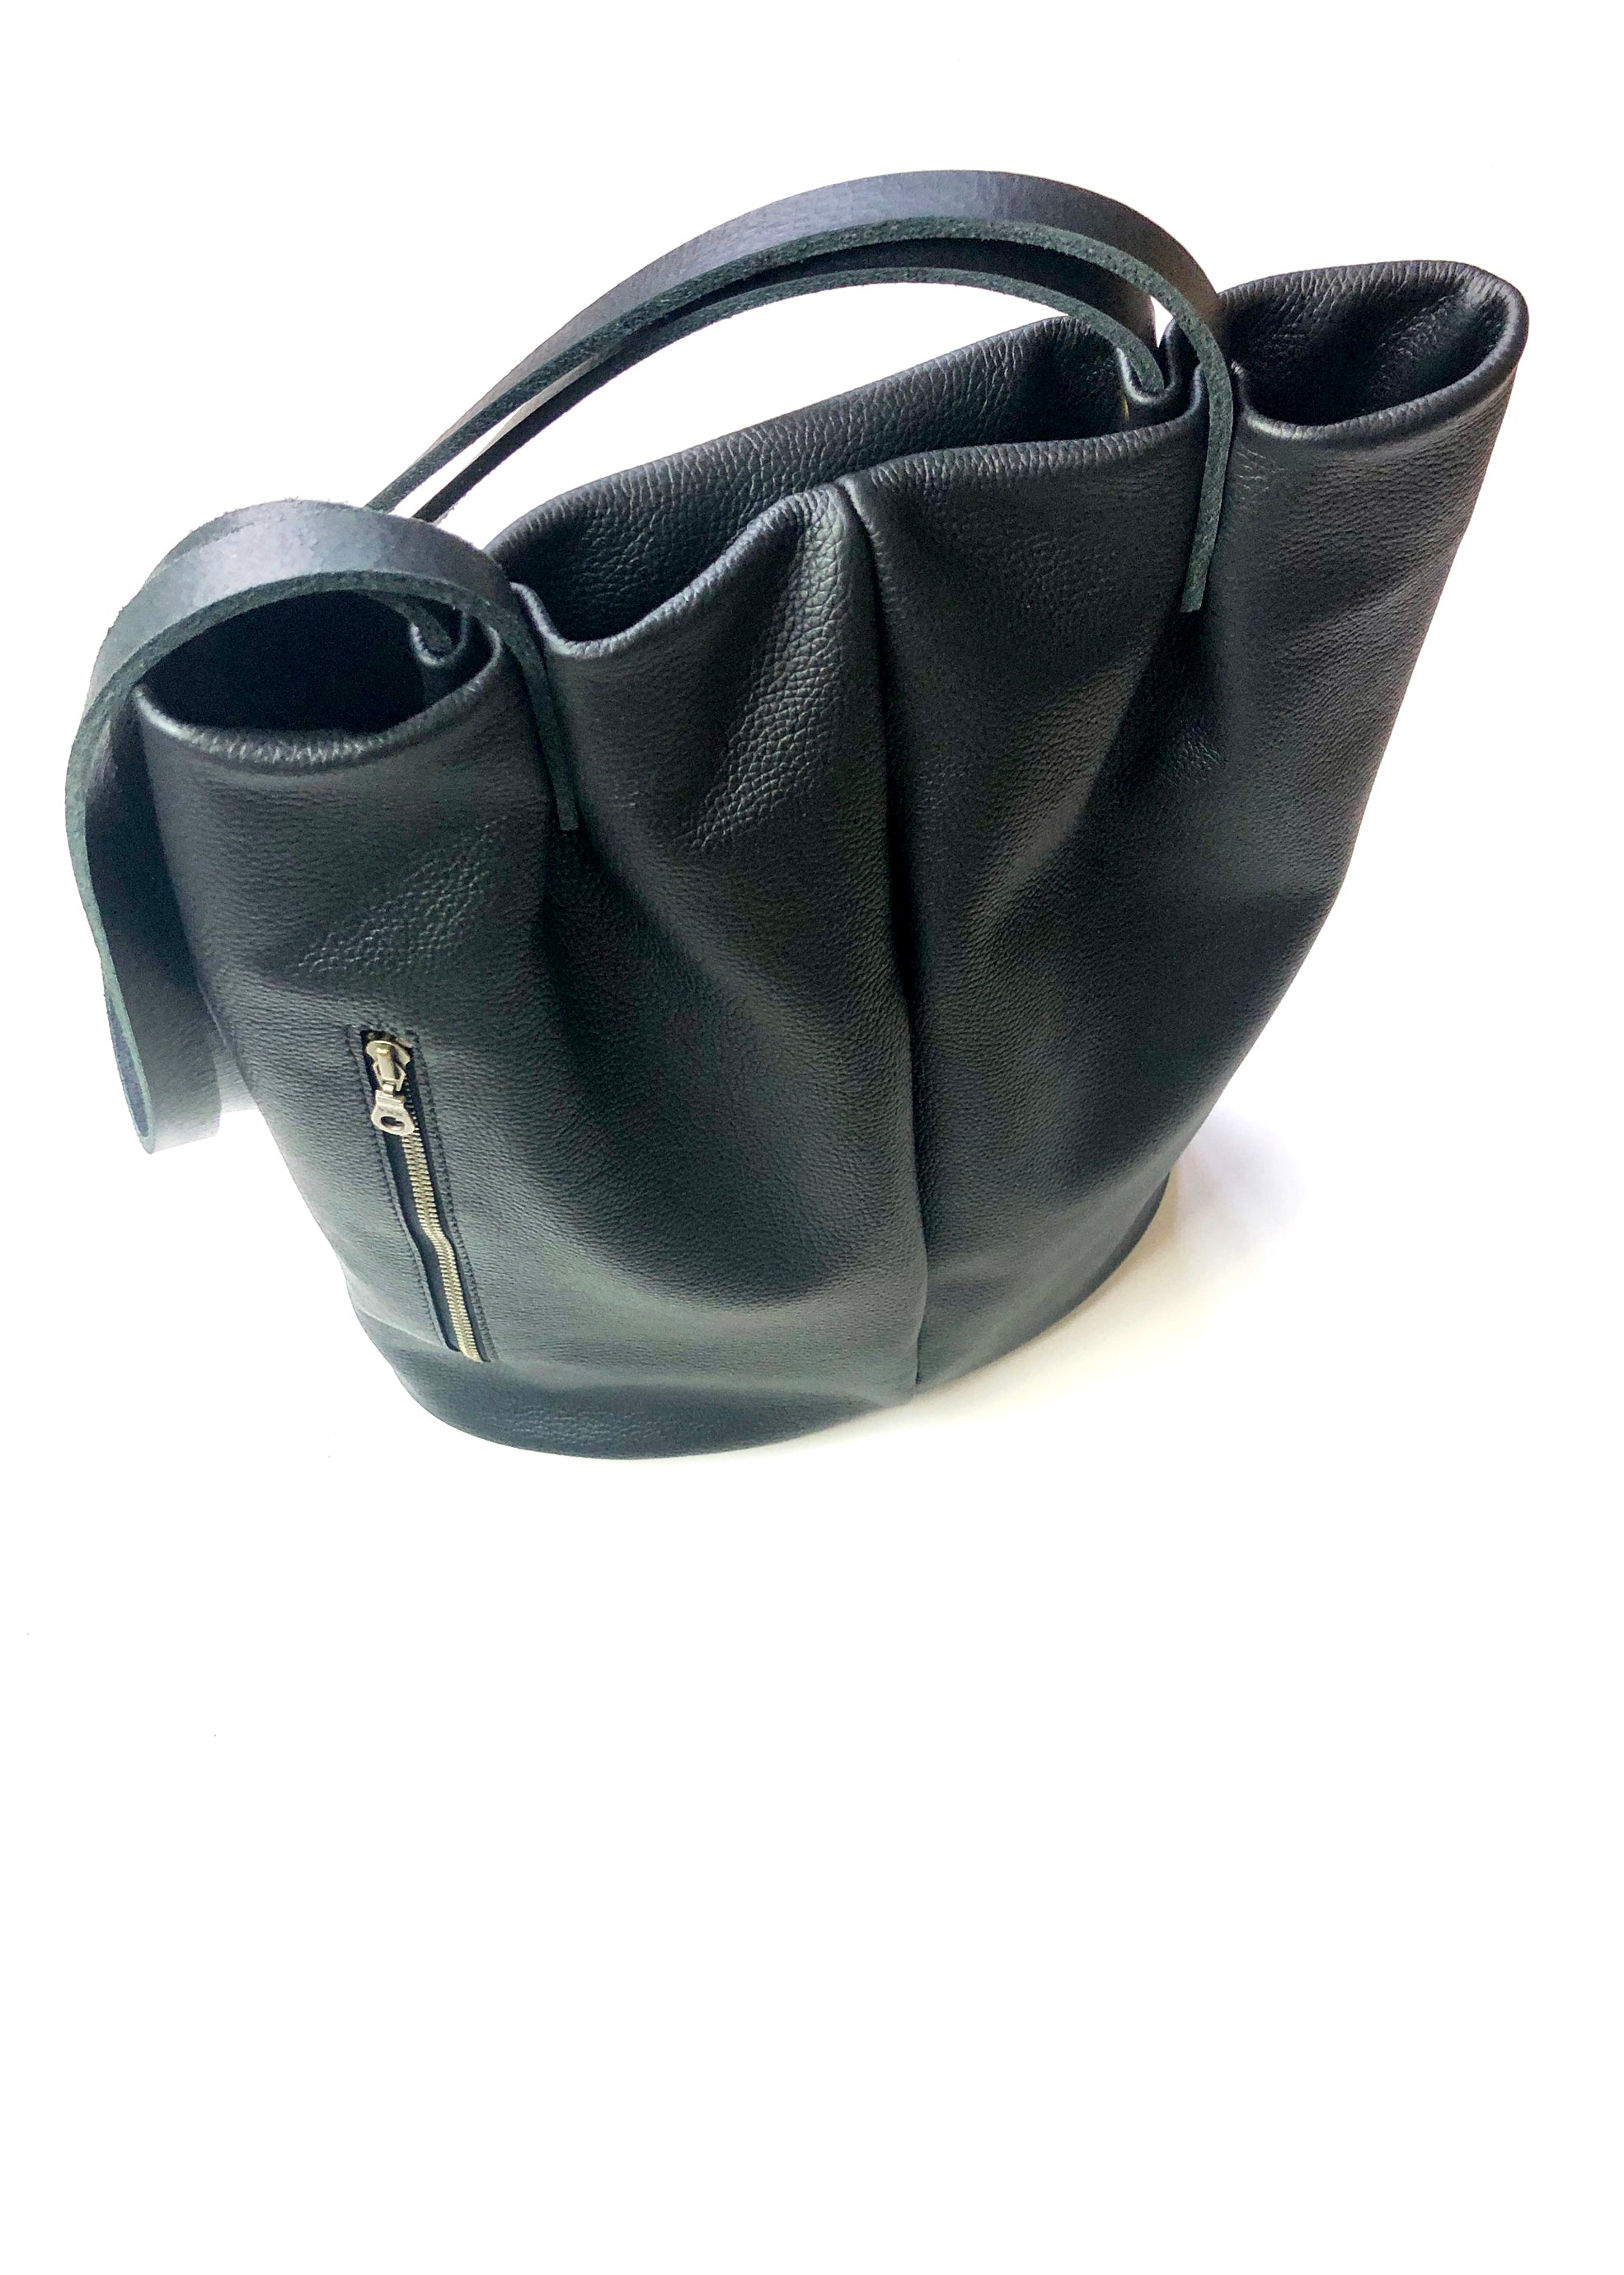 Long Tote In Black Leather